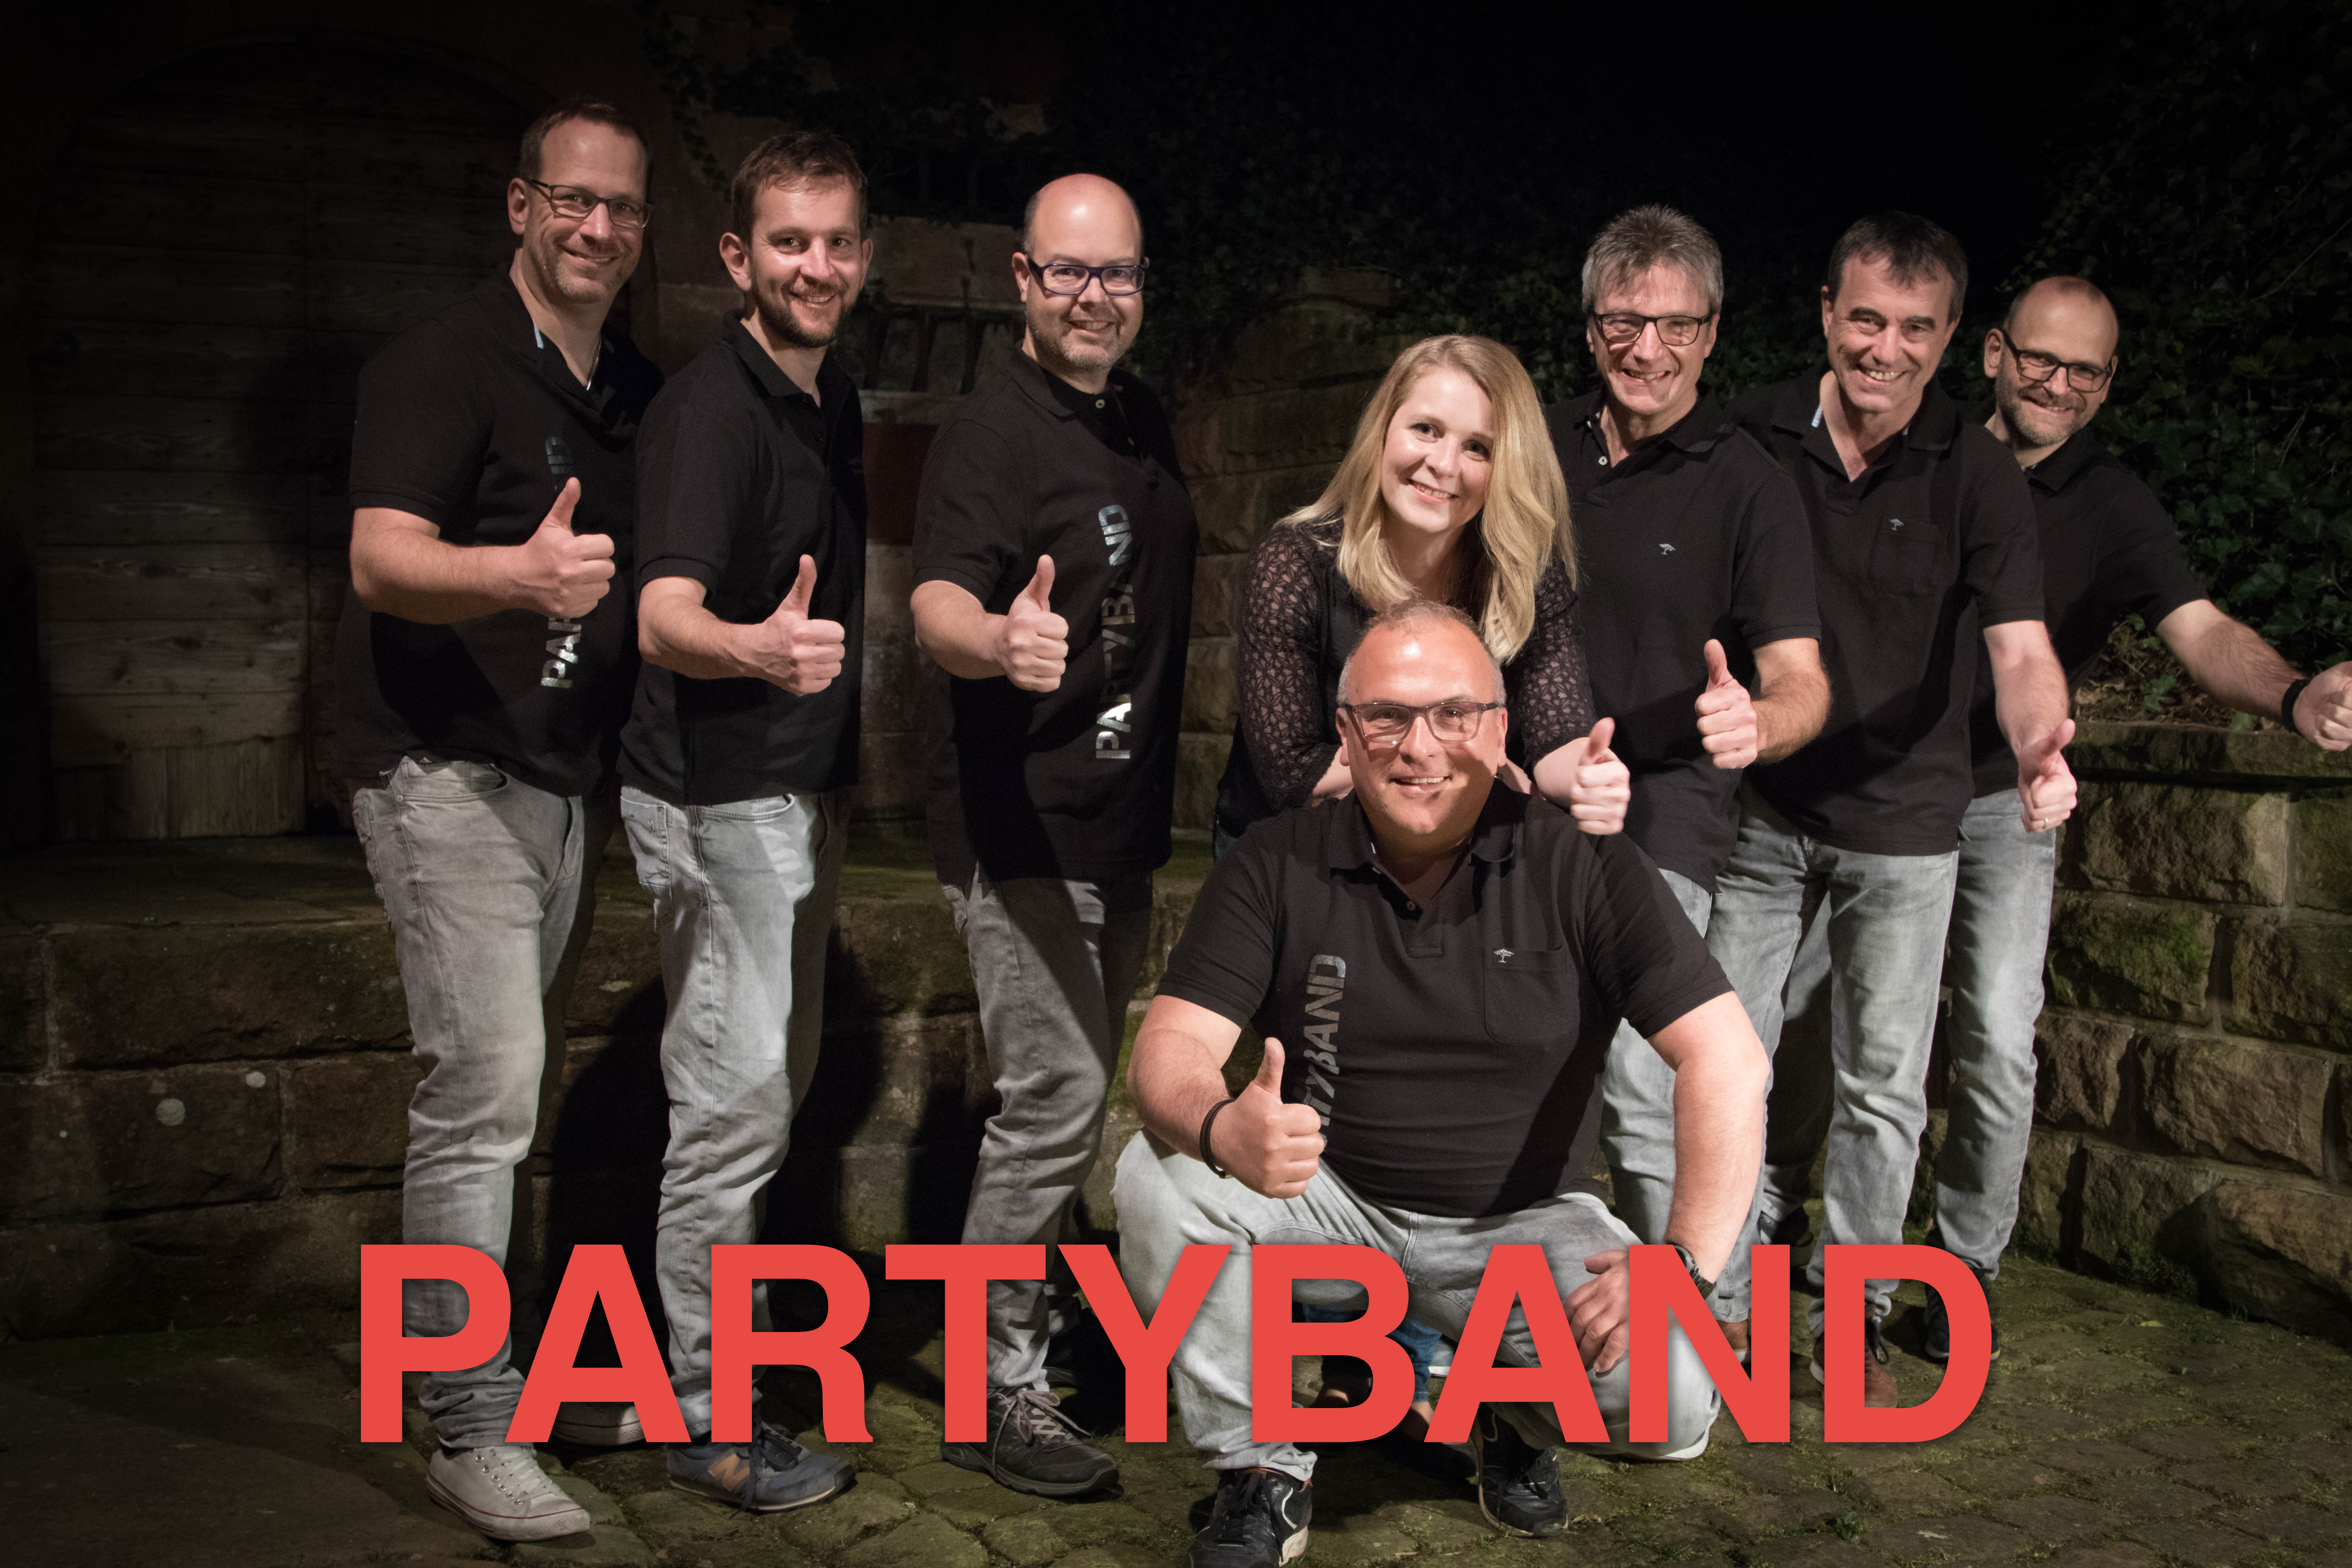 PARTYBAND